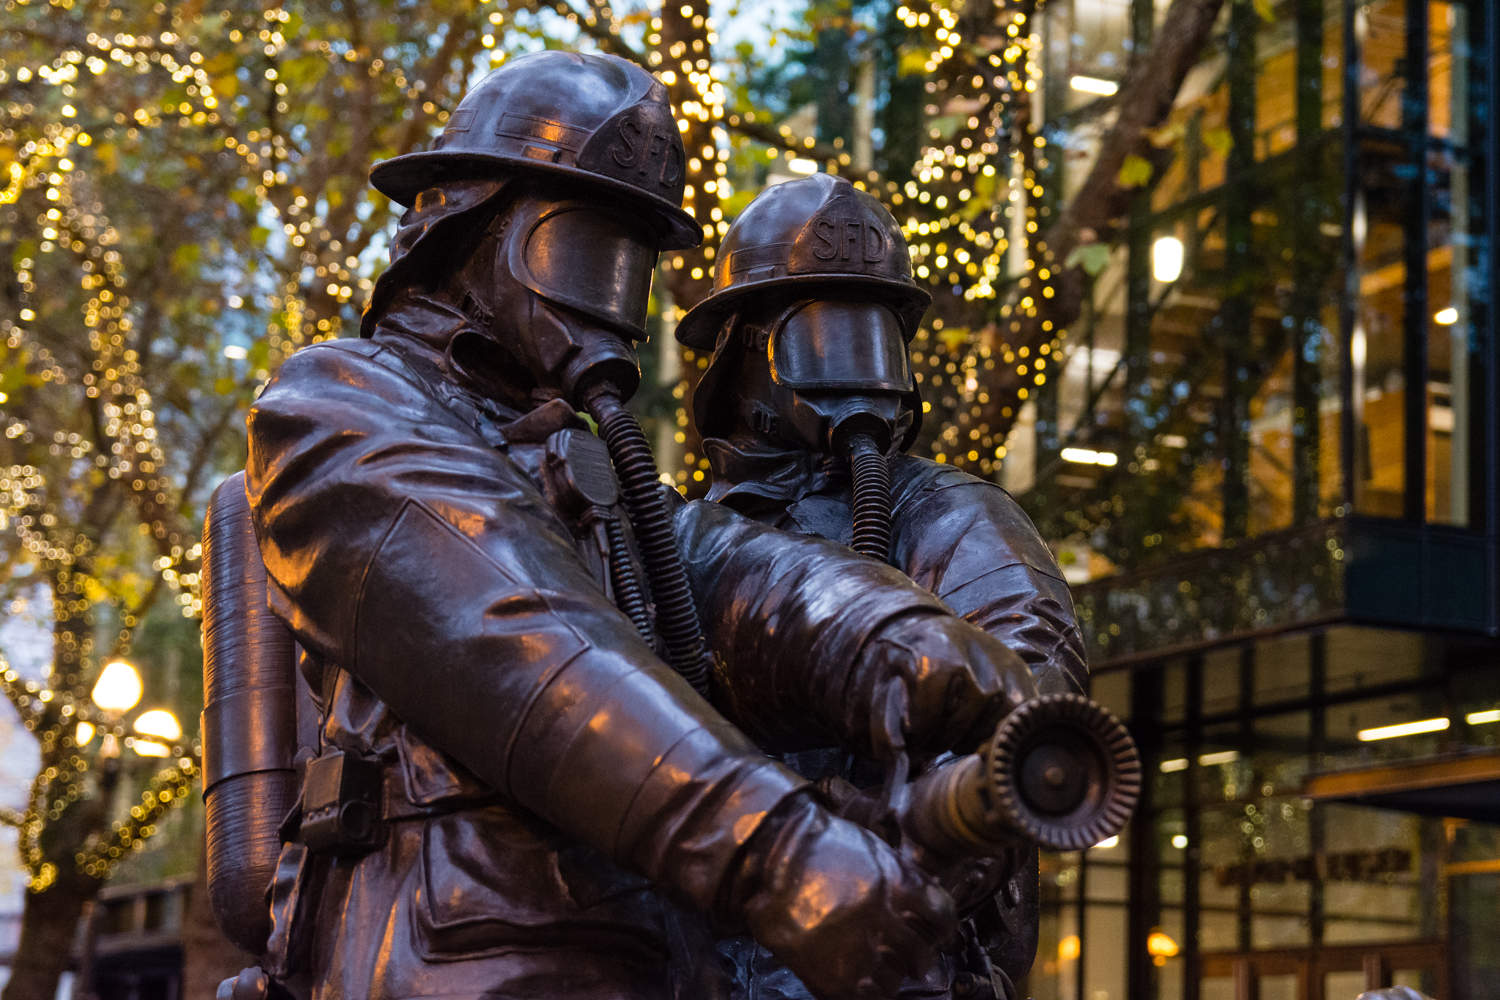 This memorial was inspired by the deaths of four Seattle firefighters who died January 5, 1995 fighting a fire in the Mary Pang warehouse in Seattle's International District - Wikipedia